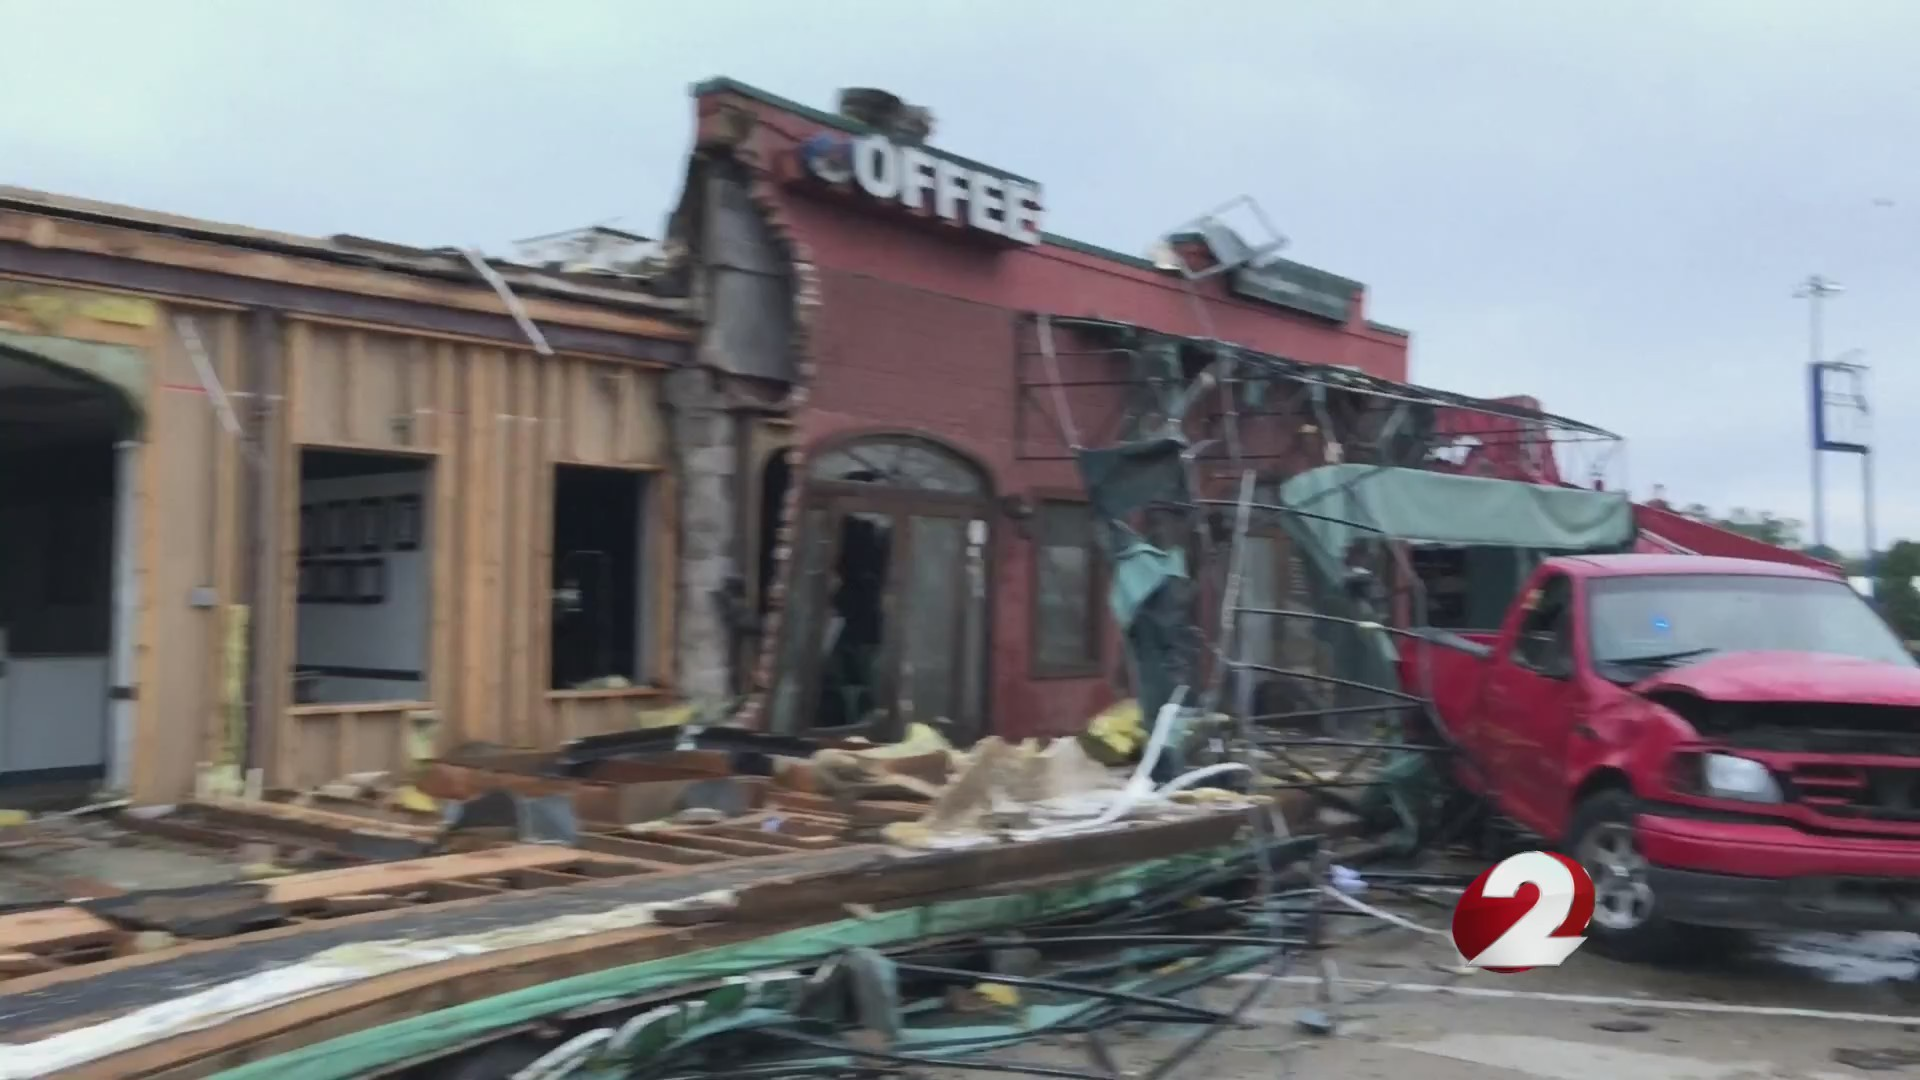 'Devastation' as tornado rips through Louisiana town